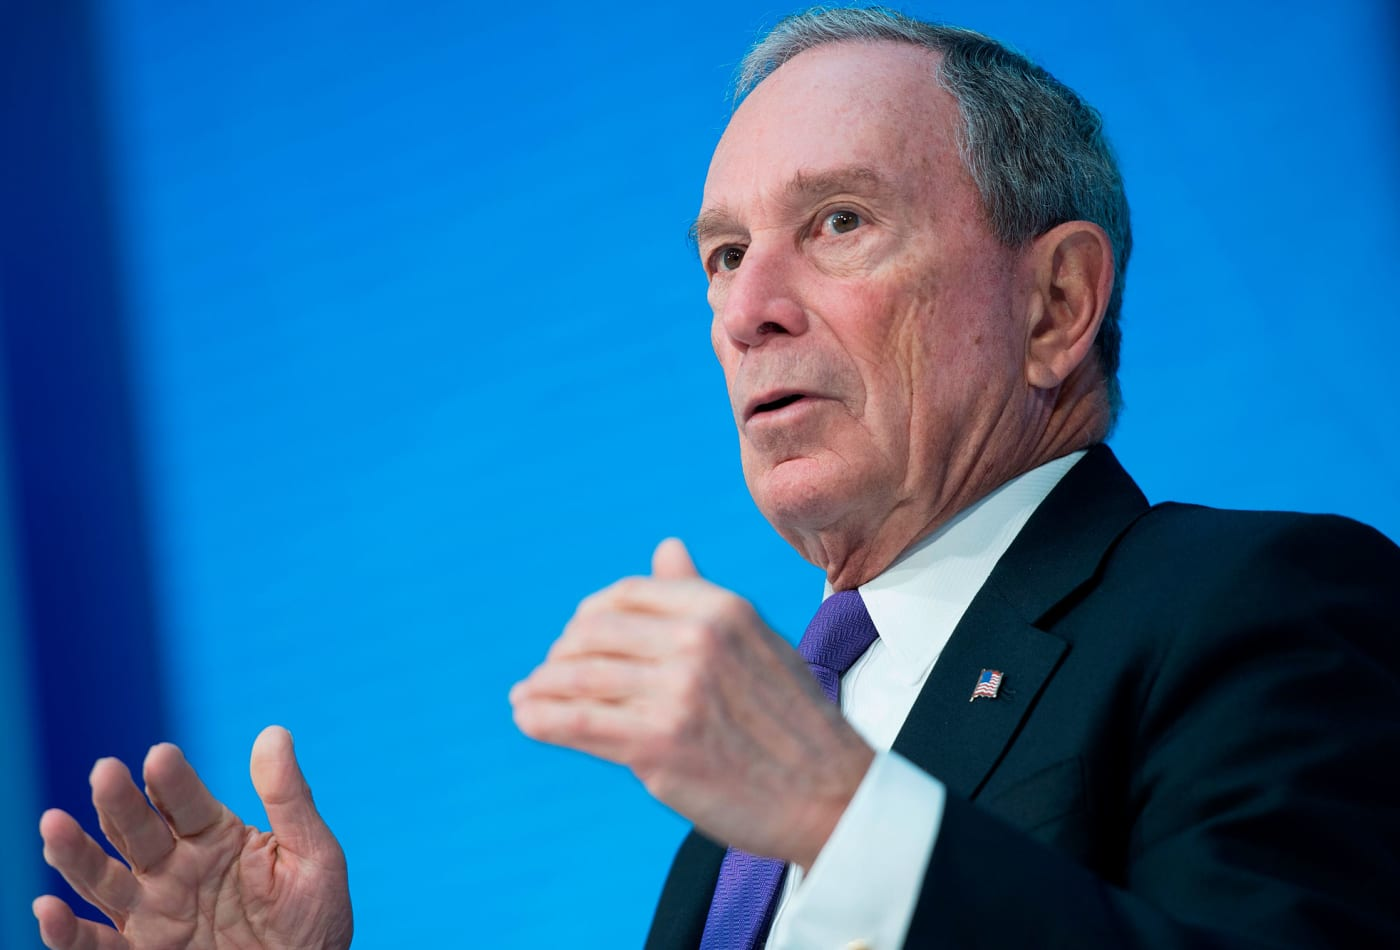 2020 Spotlight: Michael Bloomberg